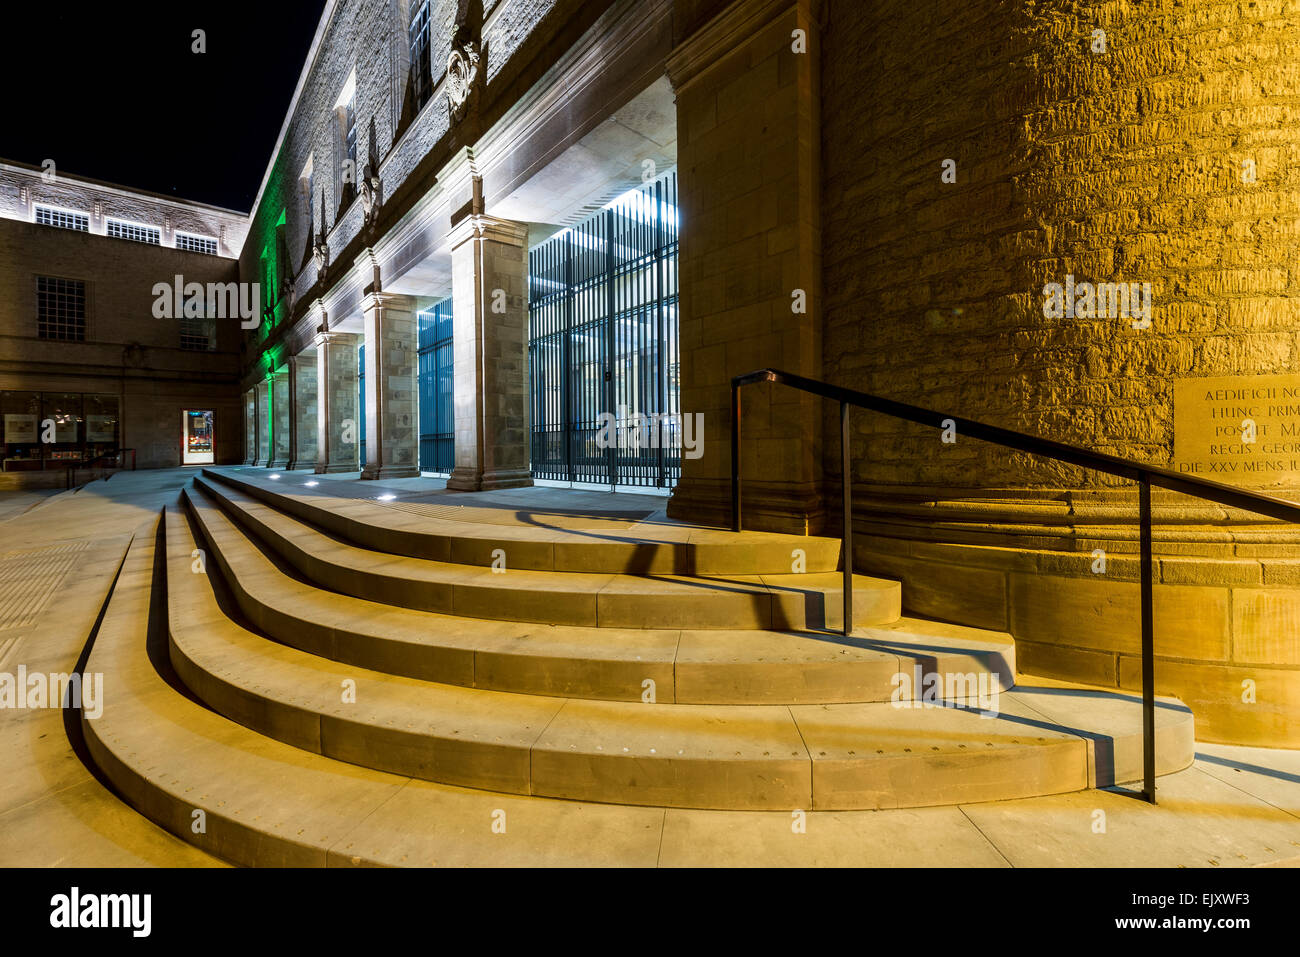 The front steps of the New Bodleian Library, part of Oxford University, seen here at night - Stock Image